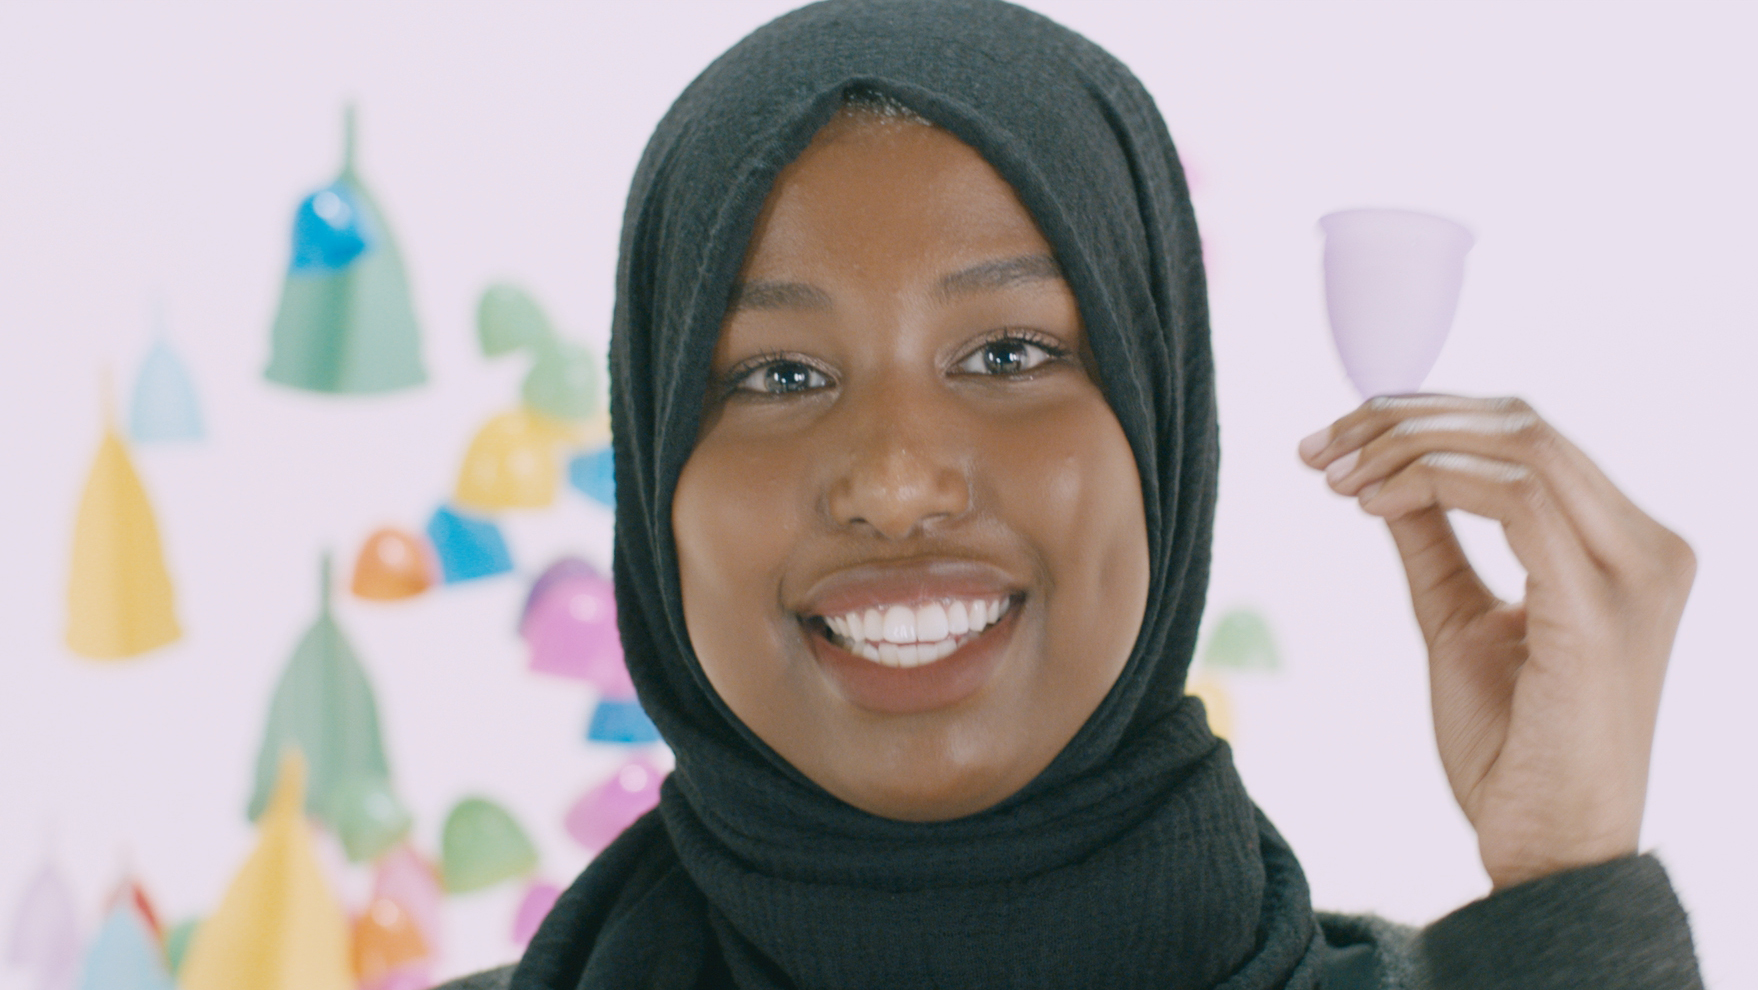 Which one should I buy? - A guide to Buying Menstrual Cups